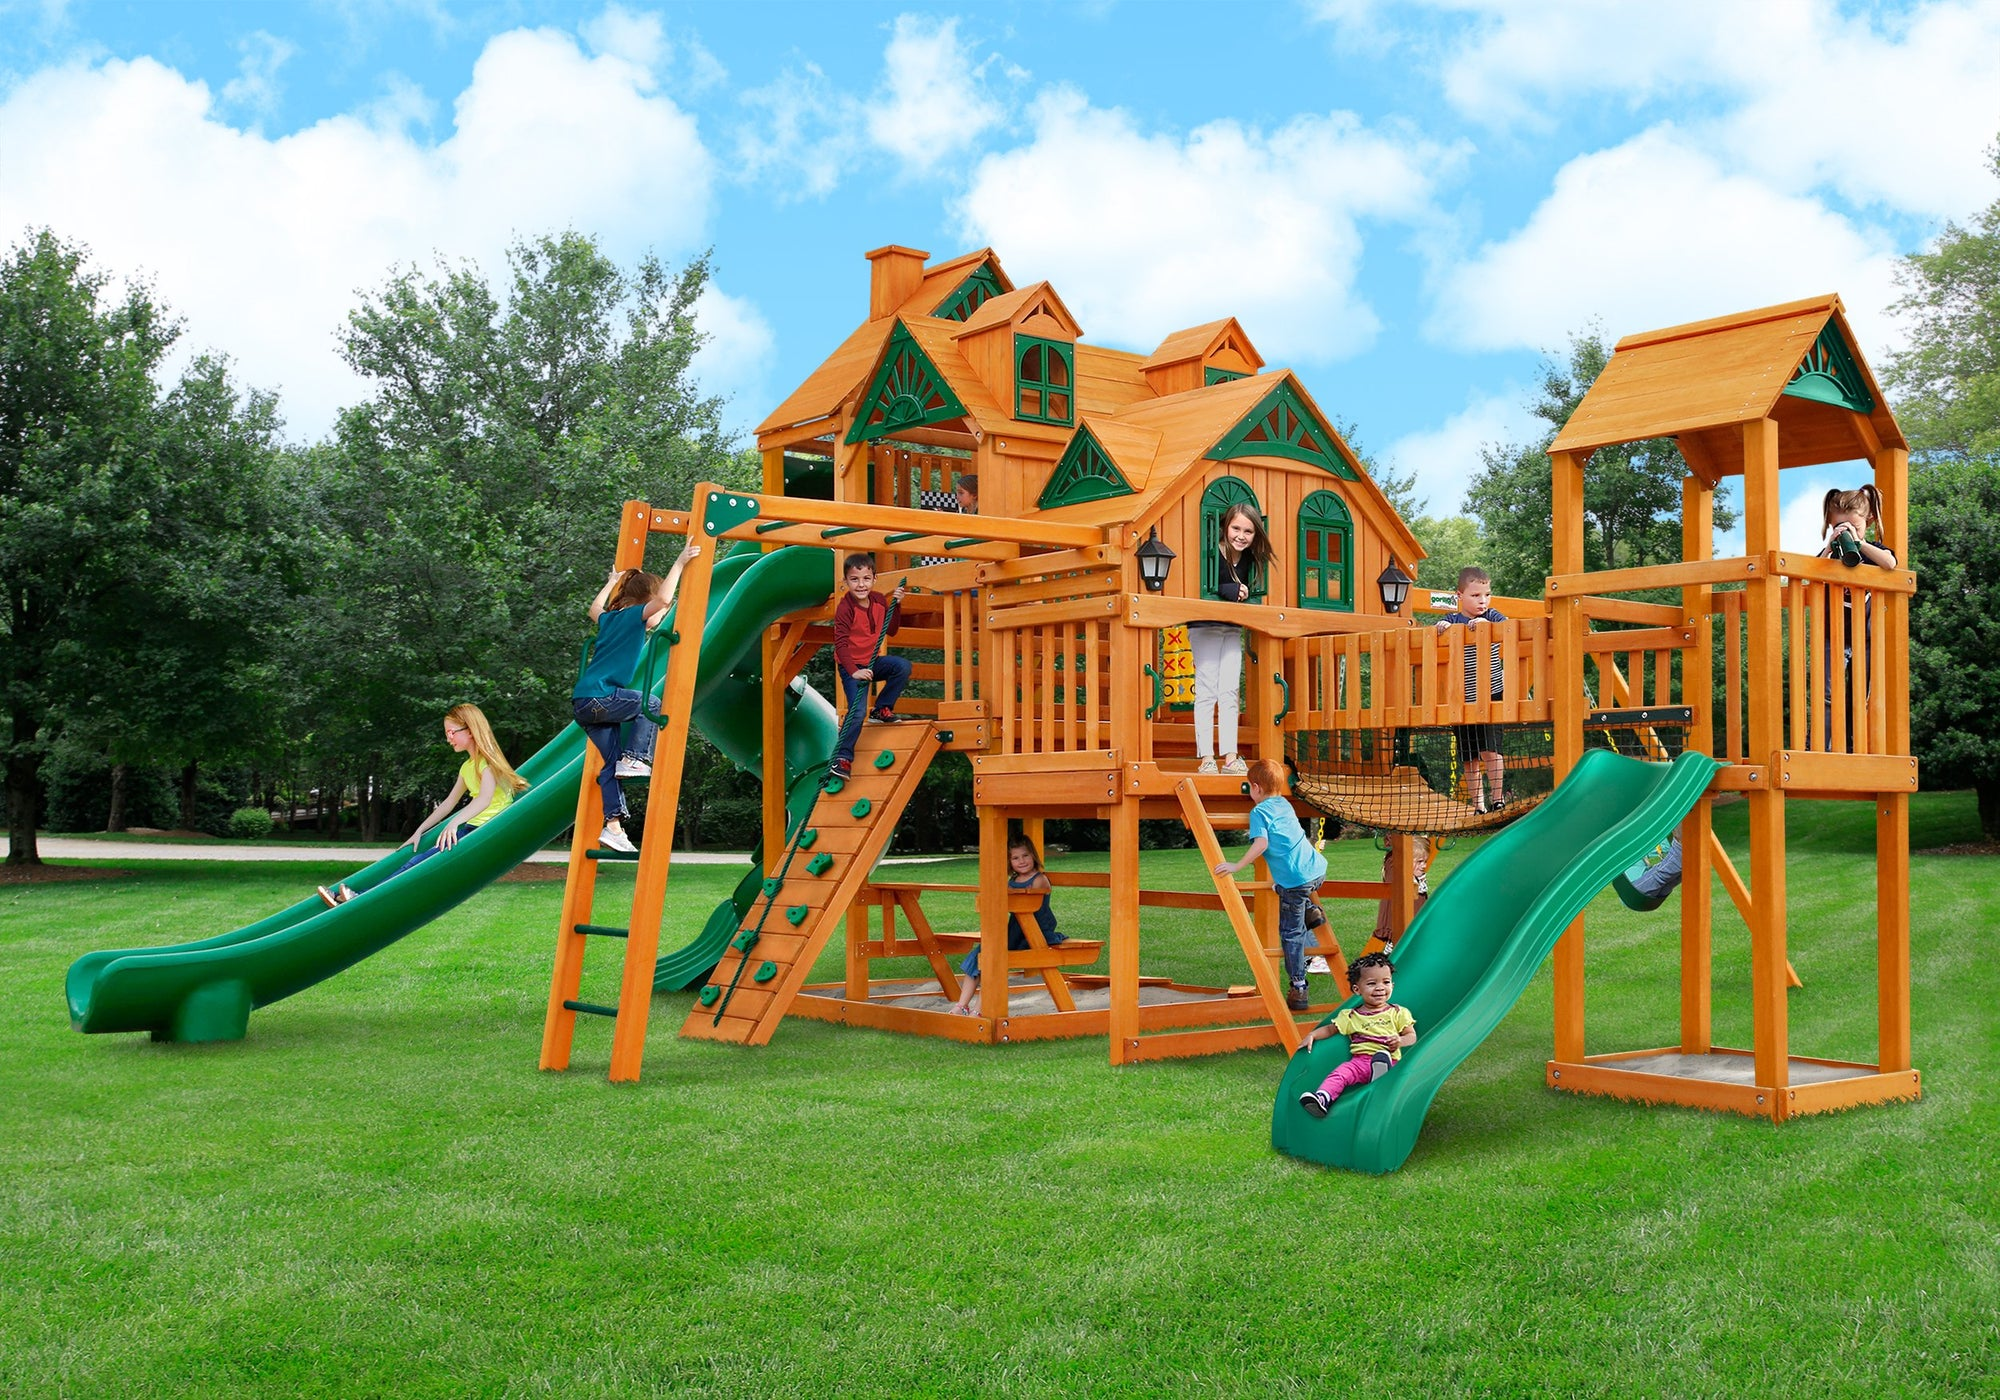 Gorilla Playsets Empire Extreme Swing Set - Kids